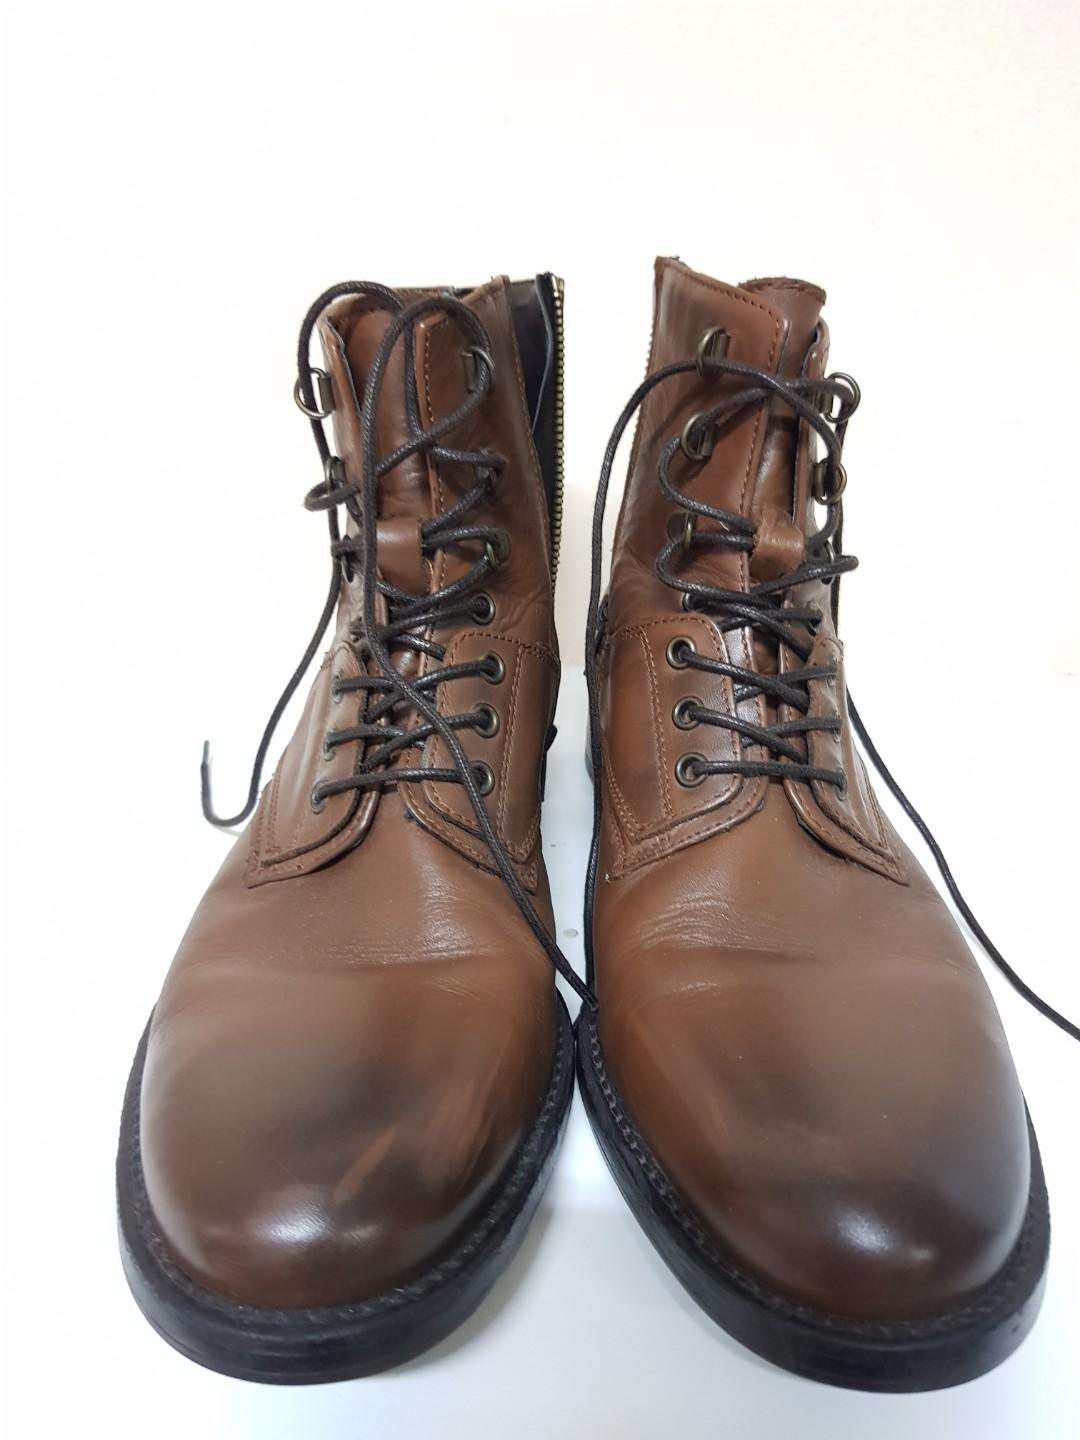 a1897a6de2c Zara Leather Boots, Men's Fashion, Footwear, Formal Shoes on Carousell